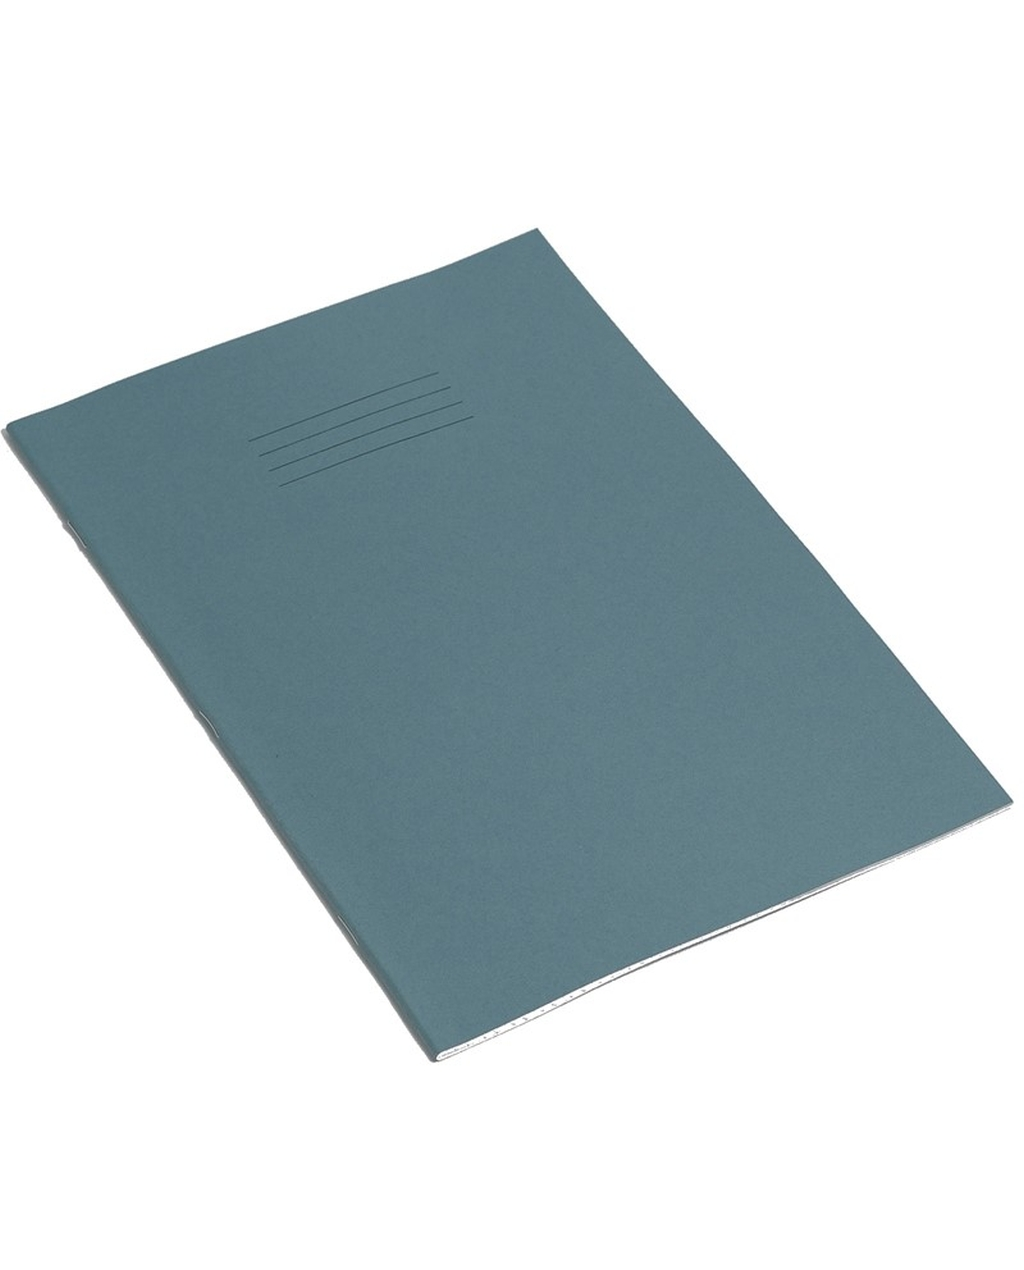 Exercise Book 8 x 6.5 (203 x 165mm) Light Blue Cover 8mm Ruled & Margin 48 Pages